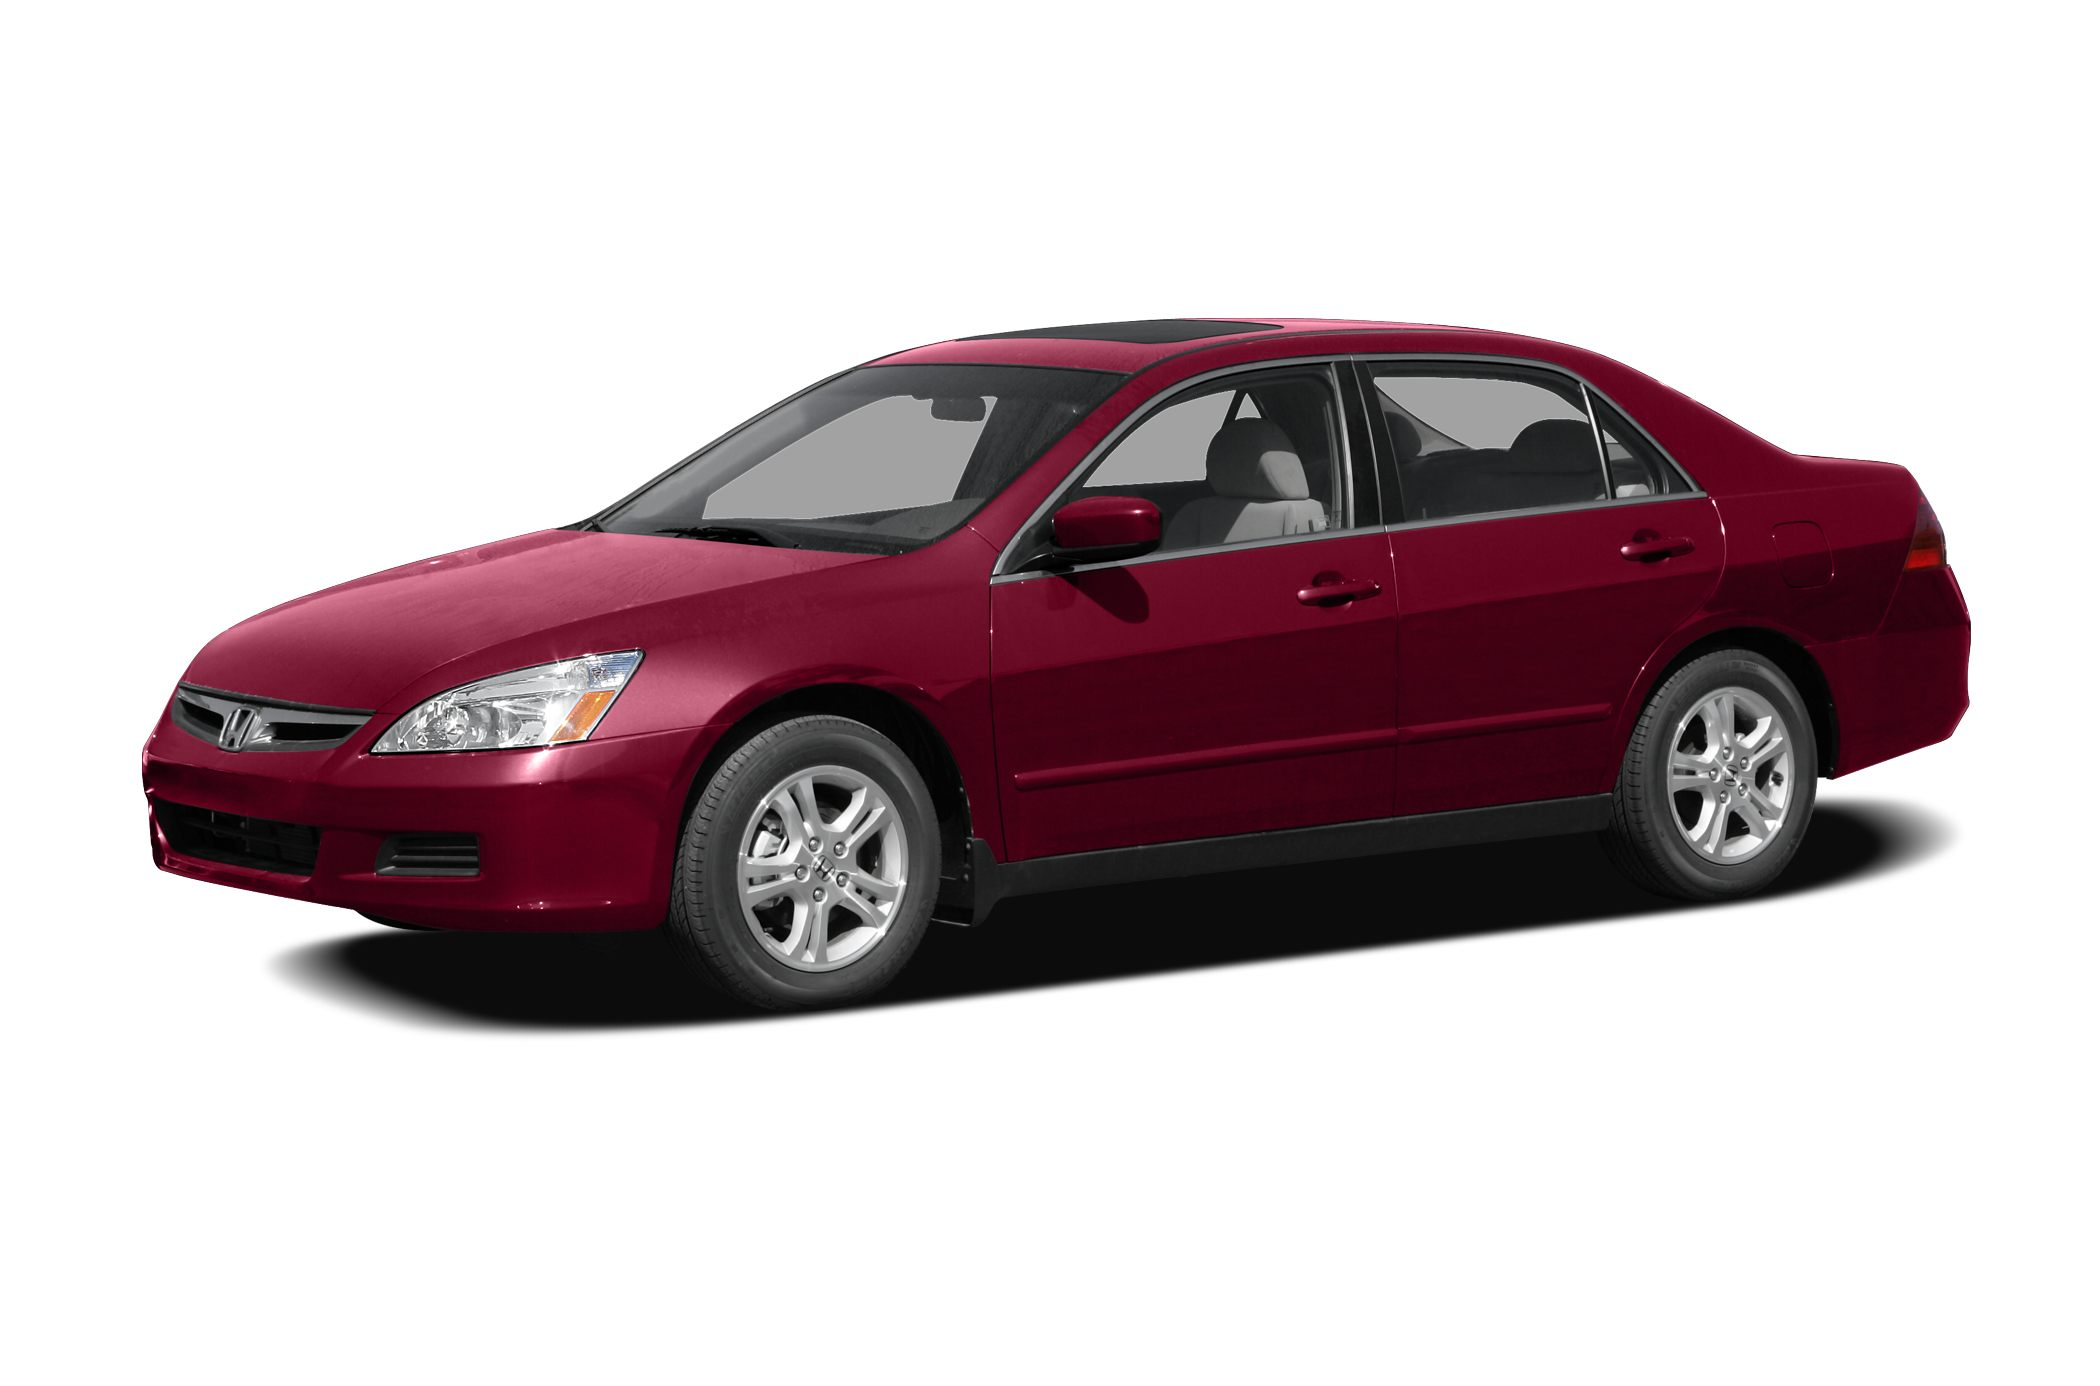 2007 HONDA ACCORD 3.0 EX